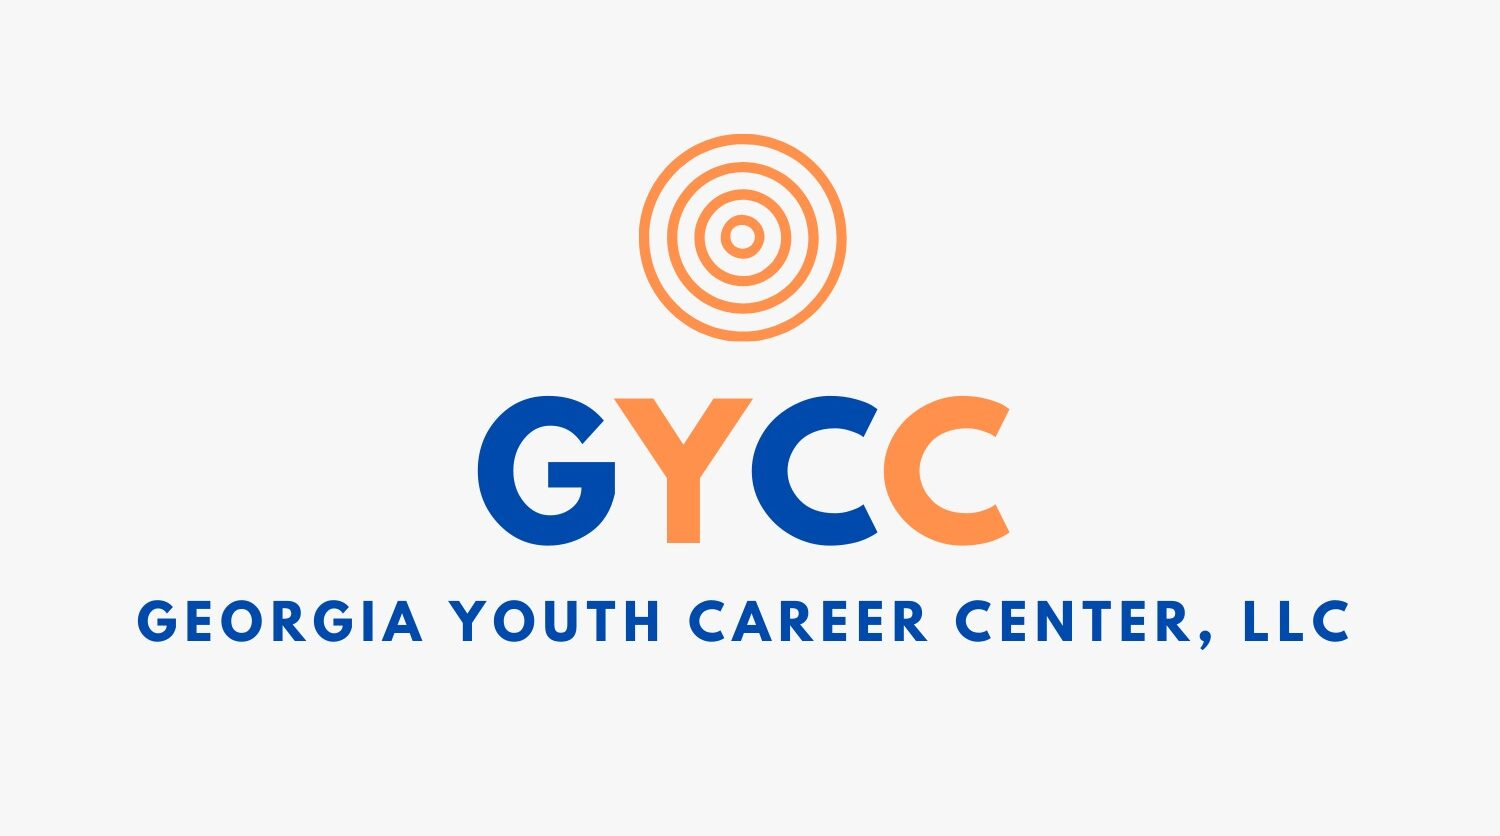 Georgia Youth Career Center